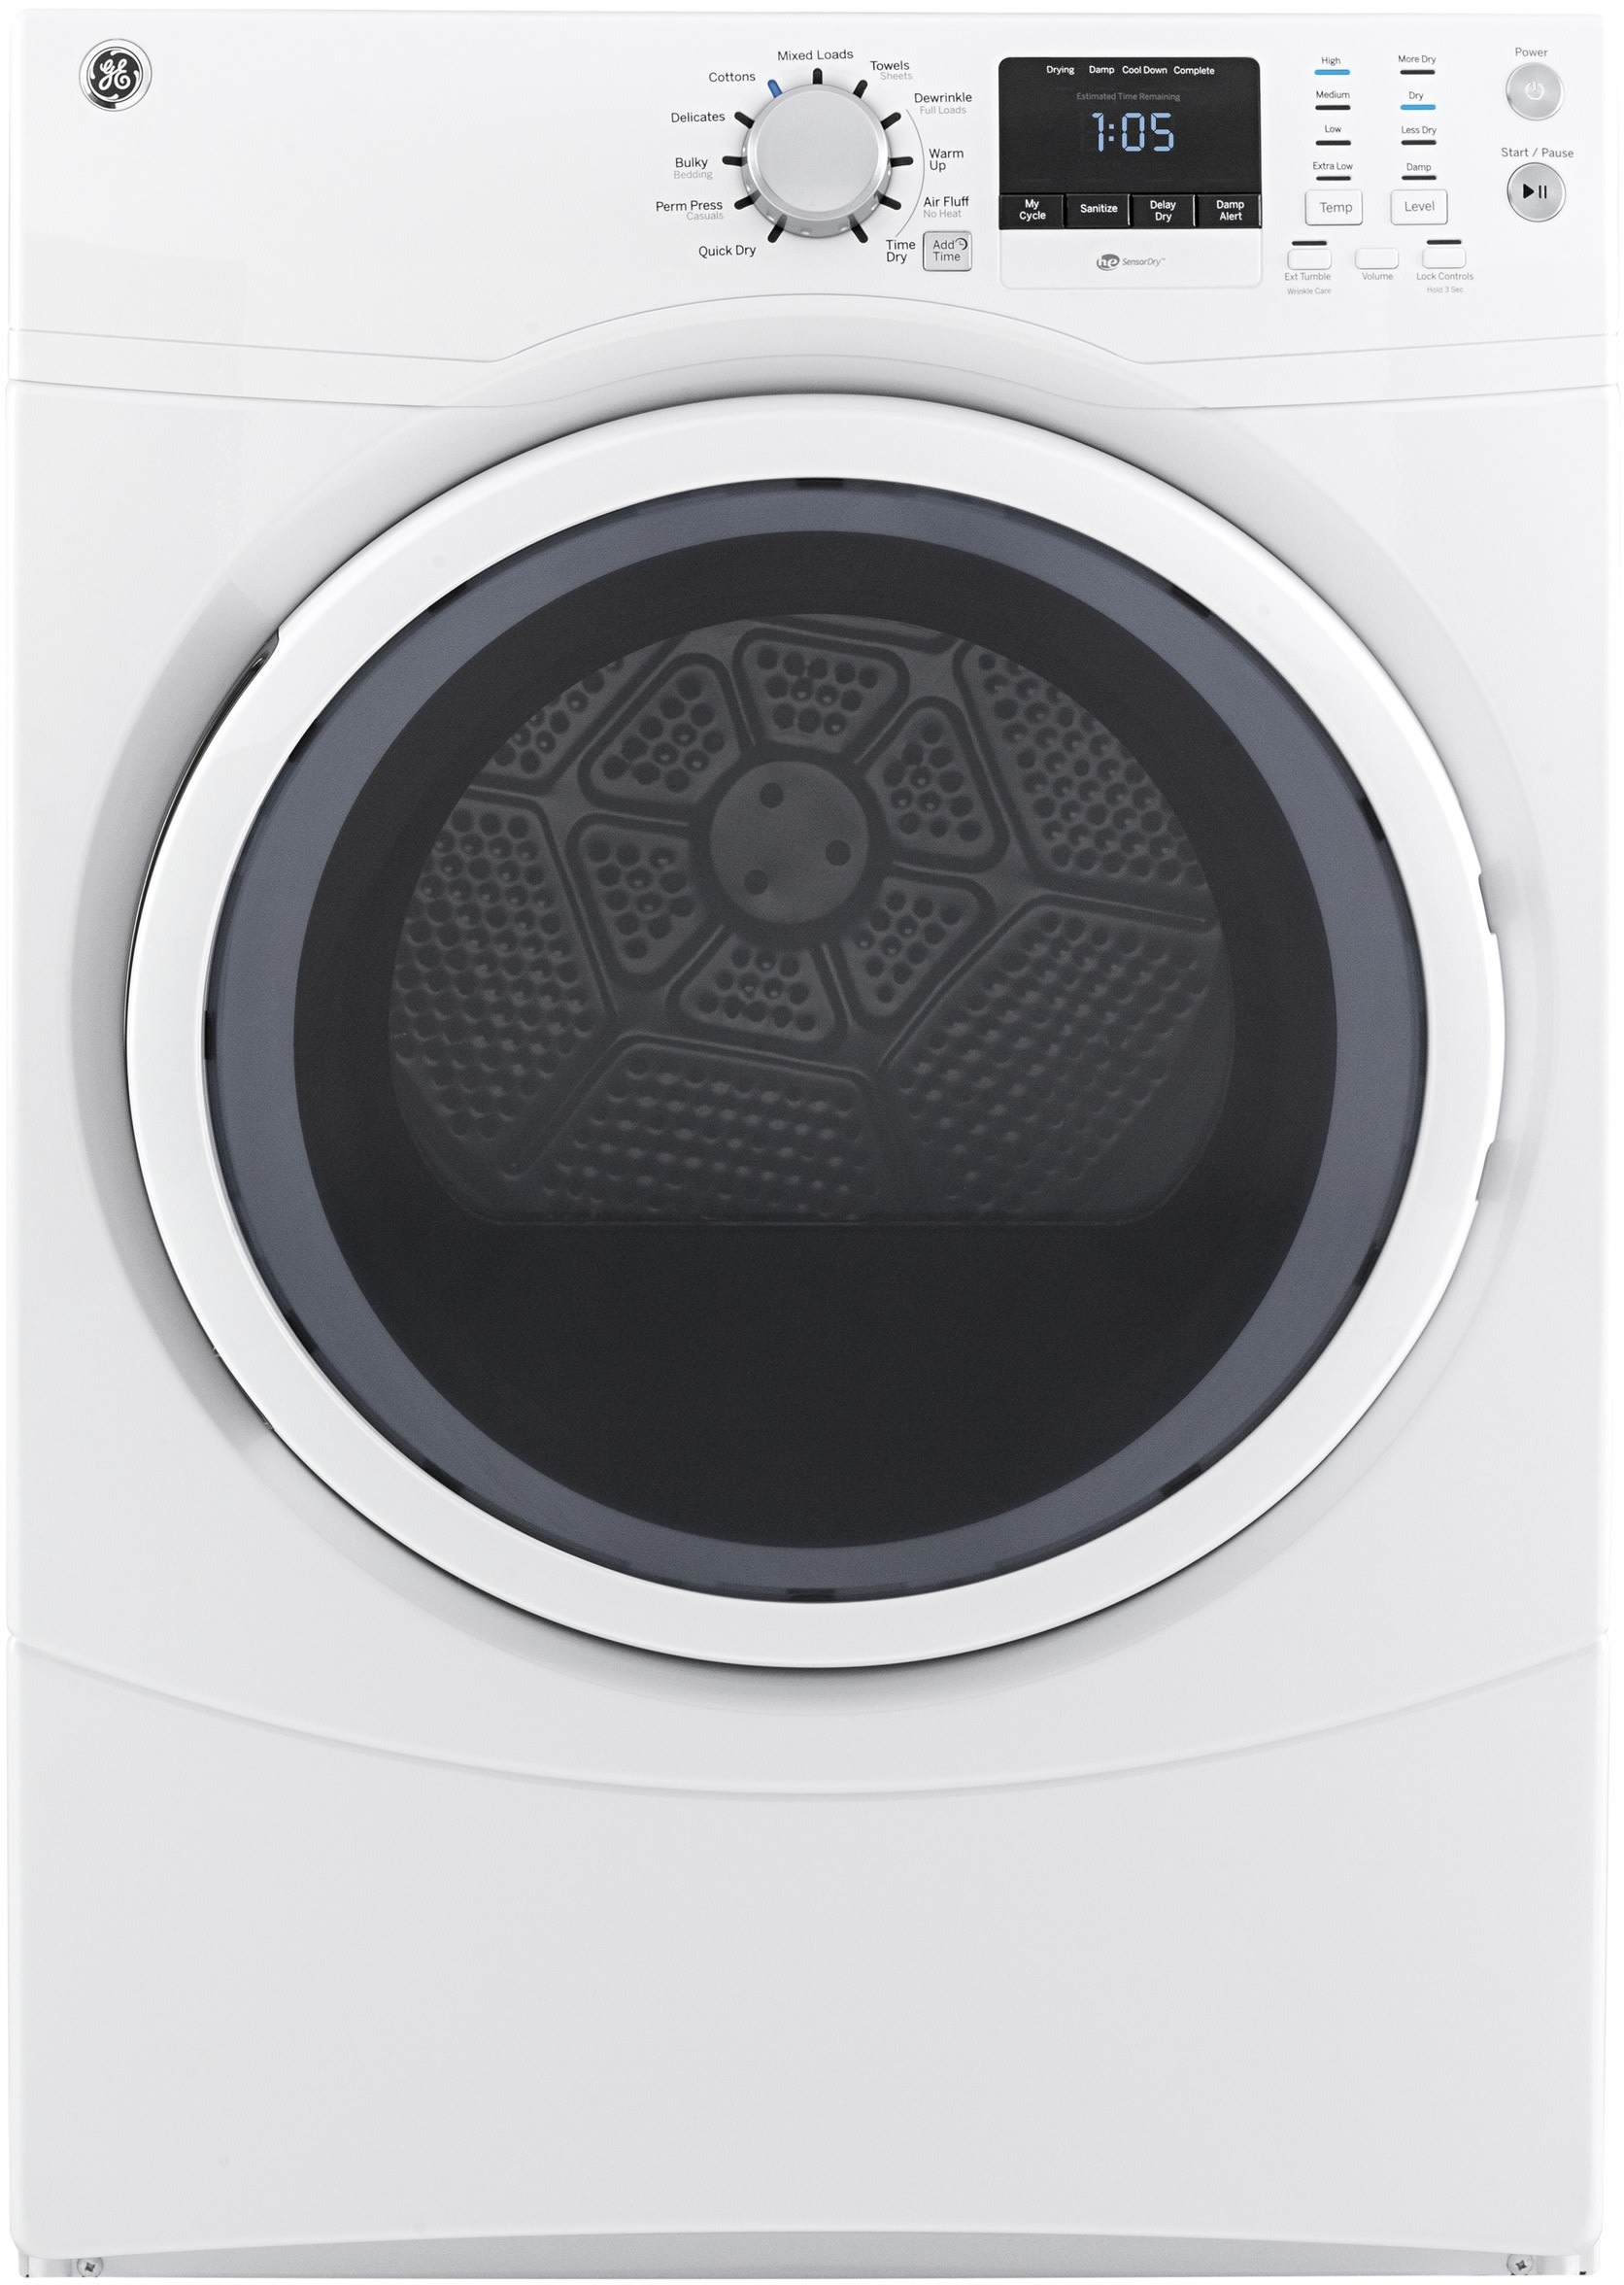 Ge Gfwn1600jww 27 Inch 4 3 Cu Ft Front Load Washer With